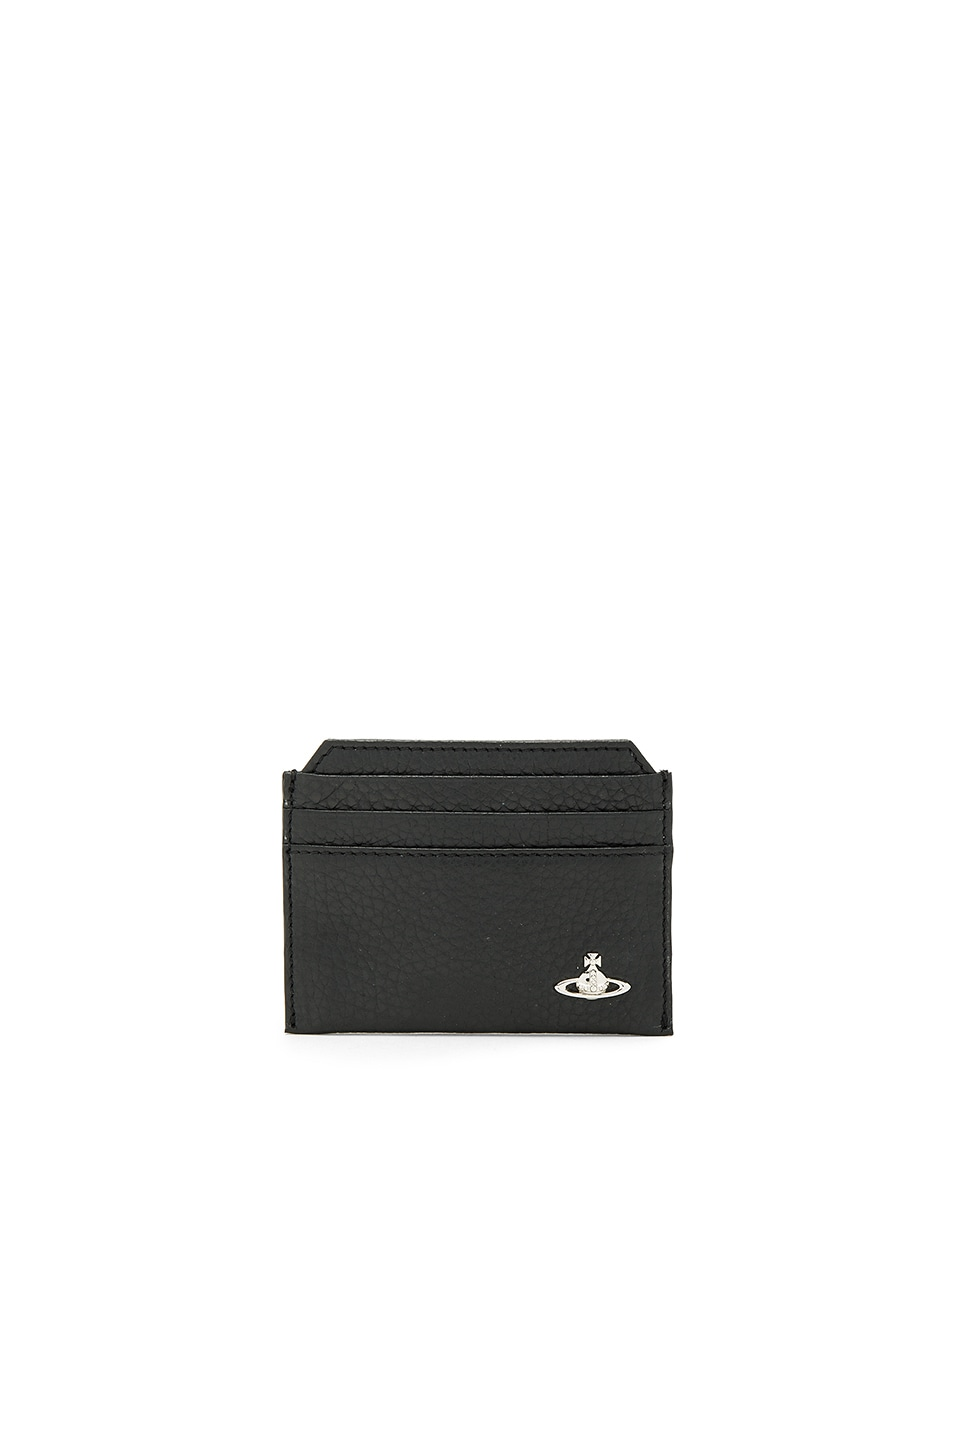 Photo of New Credit Card Holder by Vivienne Westwood men clothes